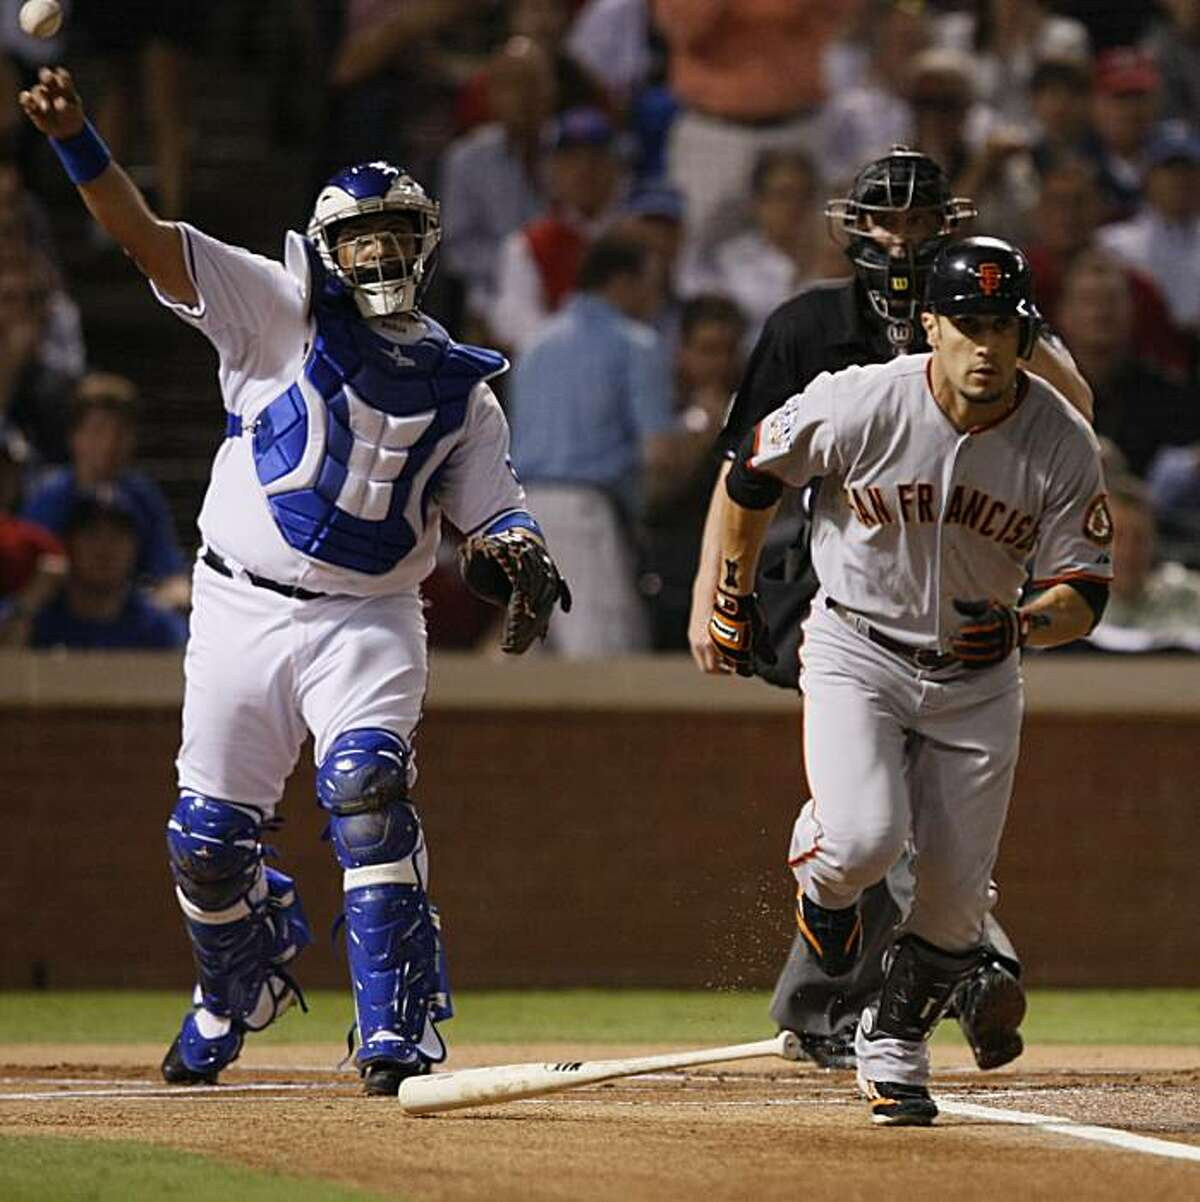 Texas Rangers catcher Bengie Molina throws the ball to first to get the out on San Francisco Giants right fielder Andres Torres in the first inning of Game 5 of the World Series on Monday.